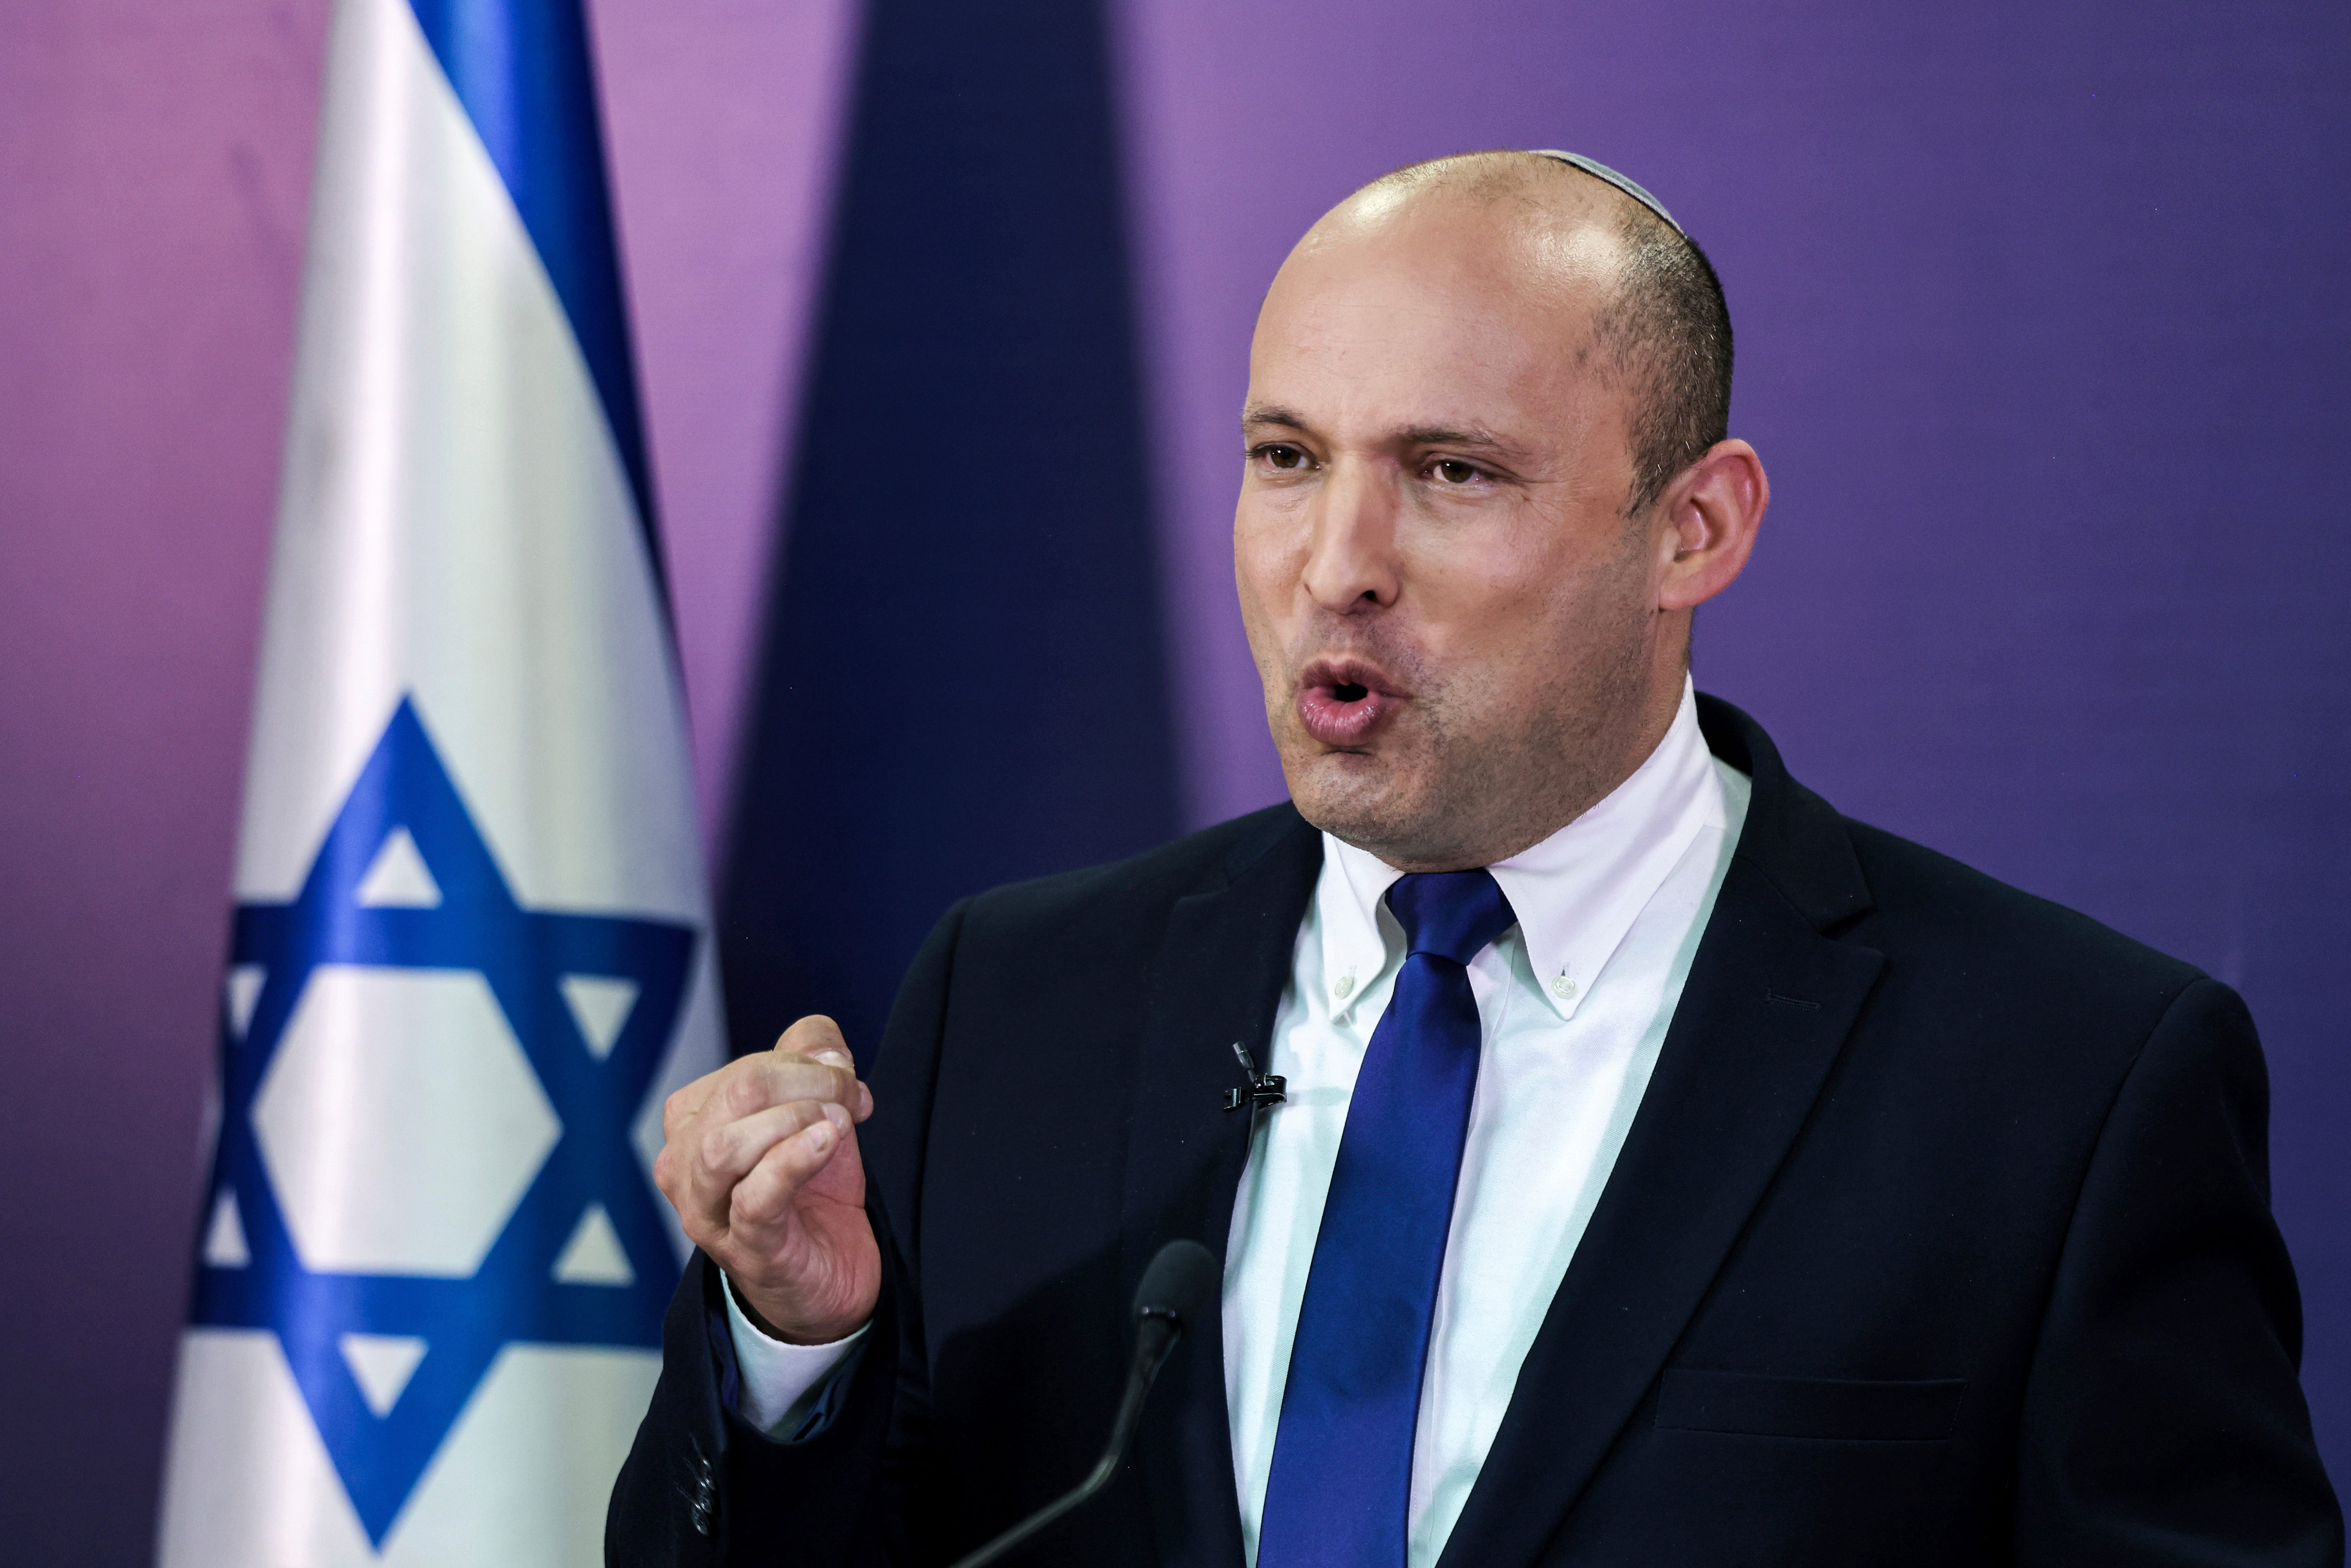 Who is Naftali Bennet, Israel s next prime minister if Benjamin Netanyahu is ousted?